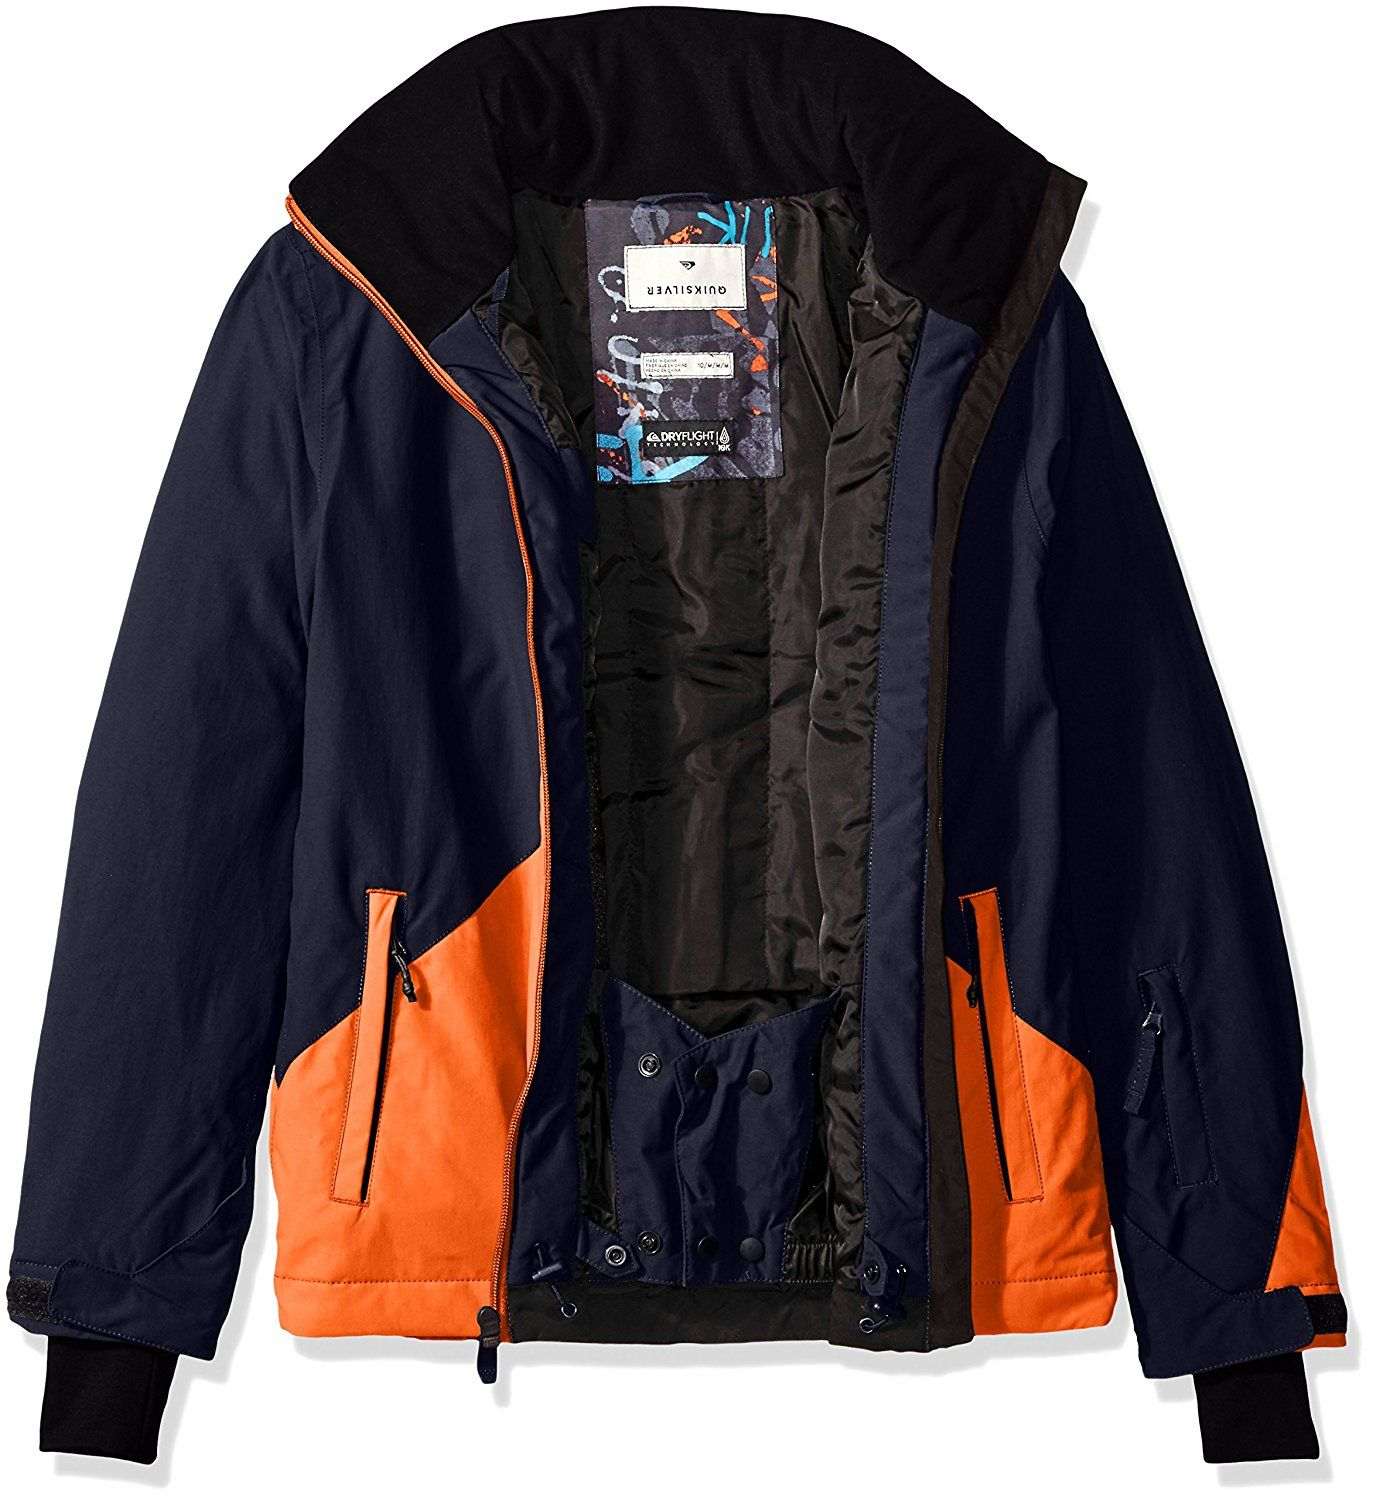 fda05d58a Quiksilver Big Boys' Mission Color Block Youth Snow Jacket Review | Down &  Down Alternative | Jackets, Hooded jacket, Nike jacket